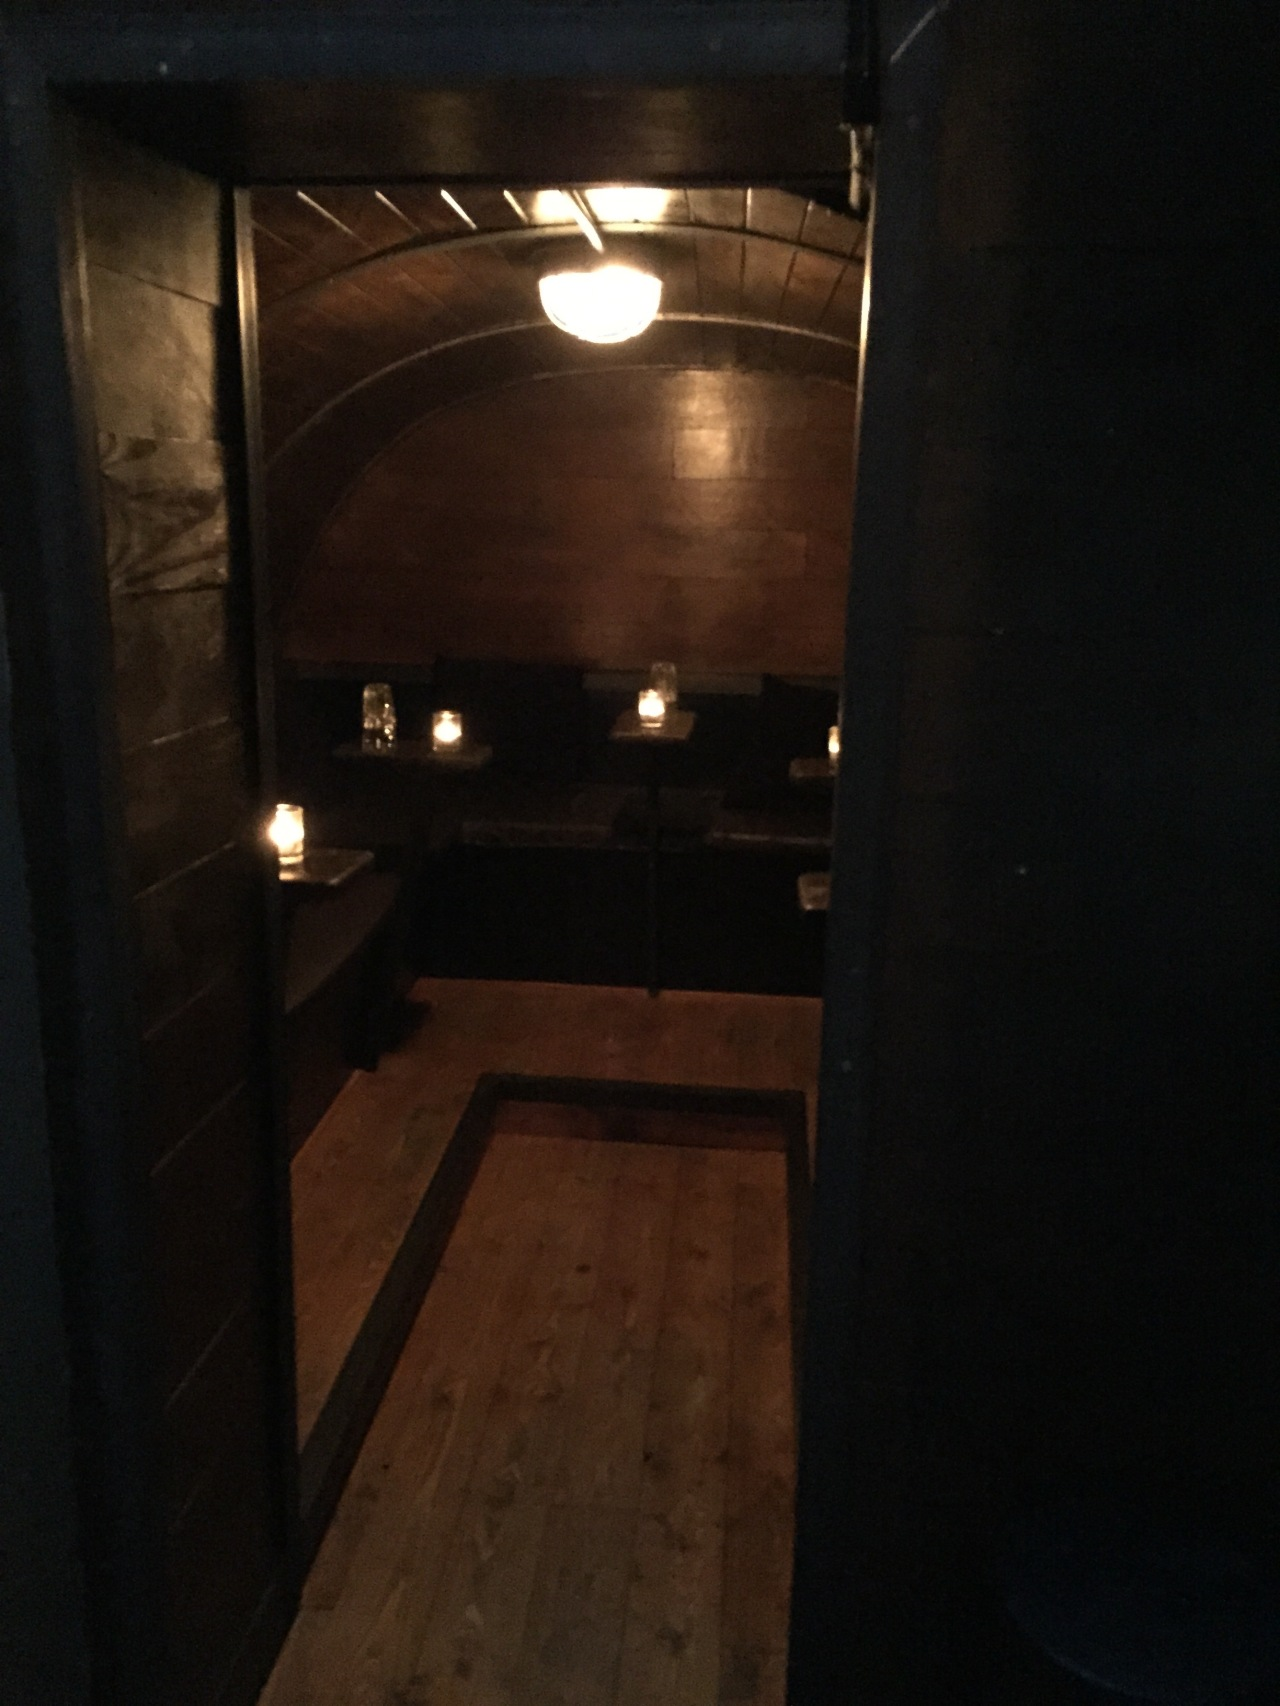 Private room for hire in The Vaults